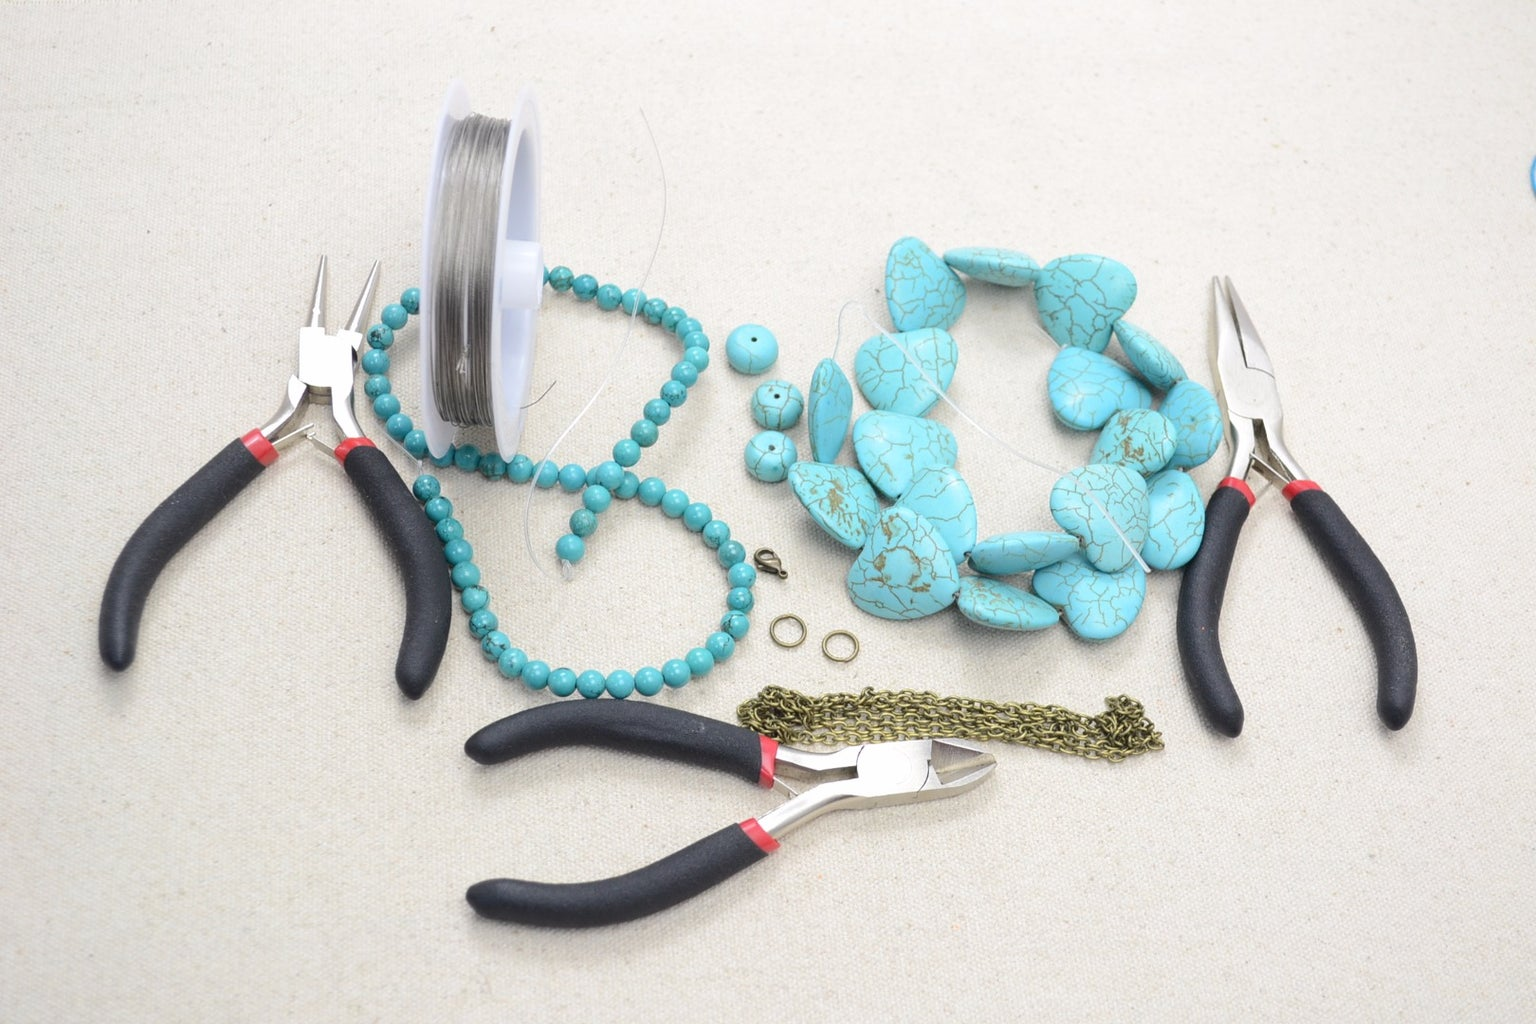 Materials and Tools for the Beaded Chain Necklace